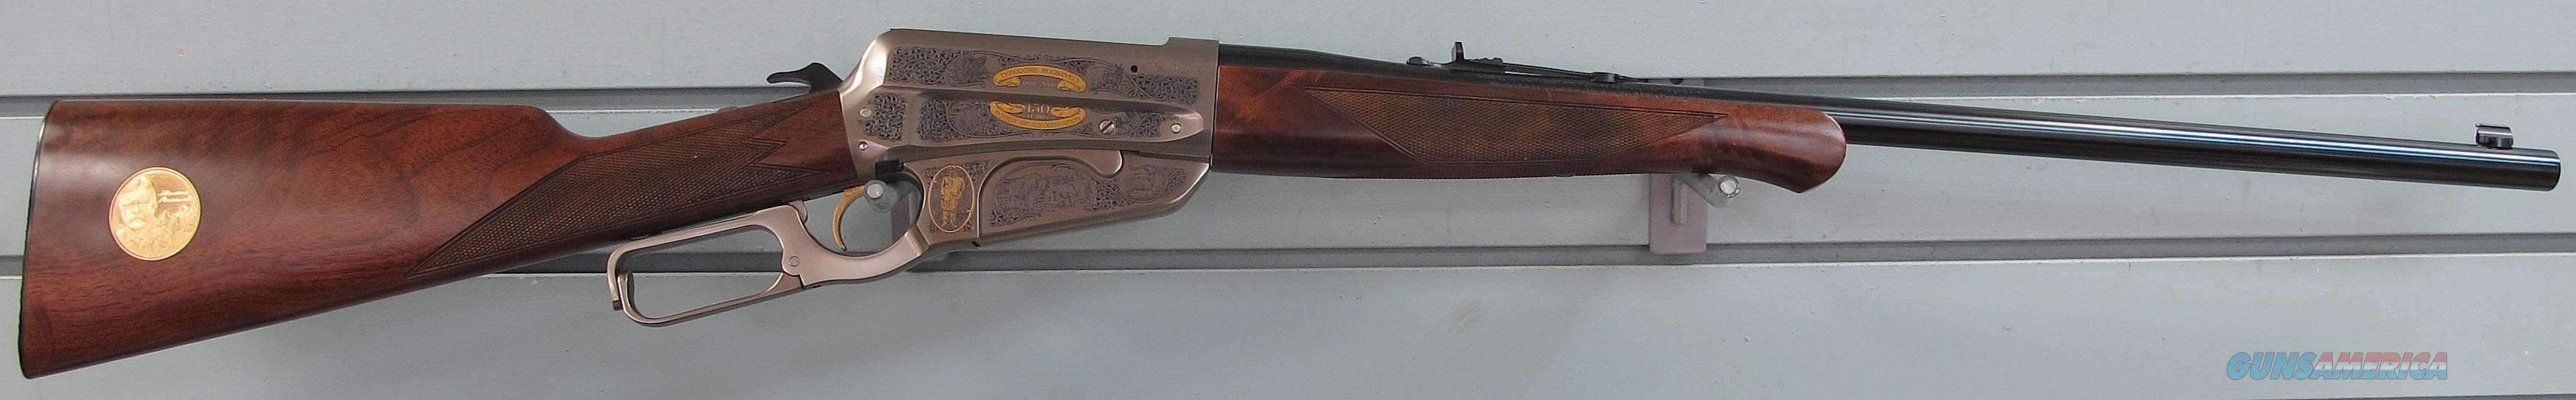 WINCHESTER 405 RIFLE MODEL 1985  Guns > Rifles > Winchester Rifles - Modern Lever > Other Lever > Post-64